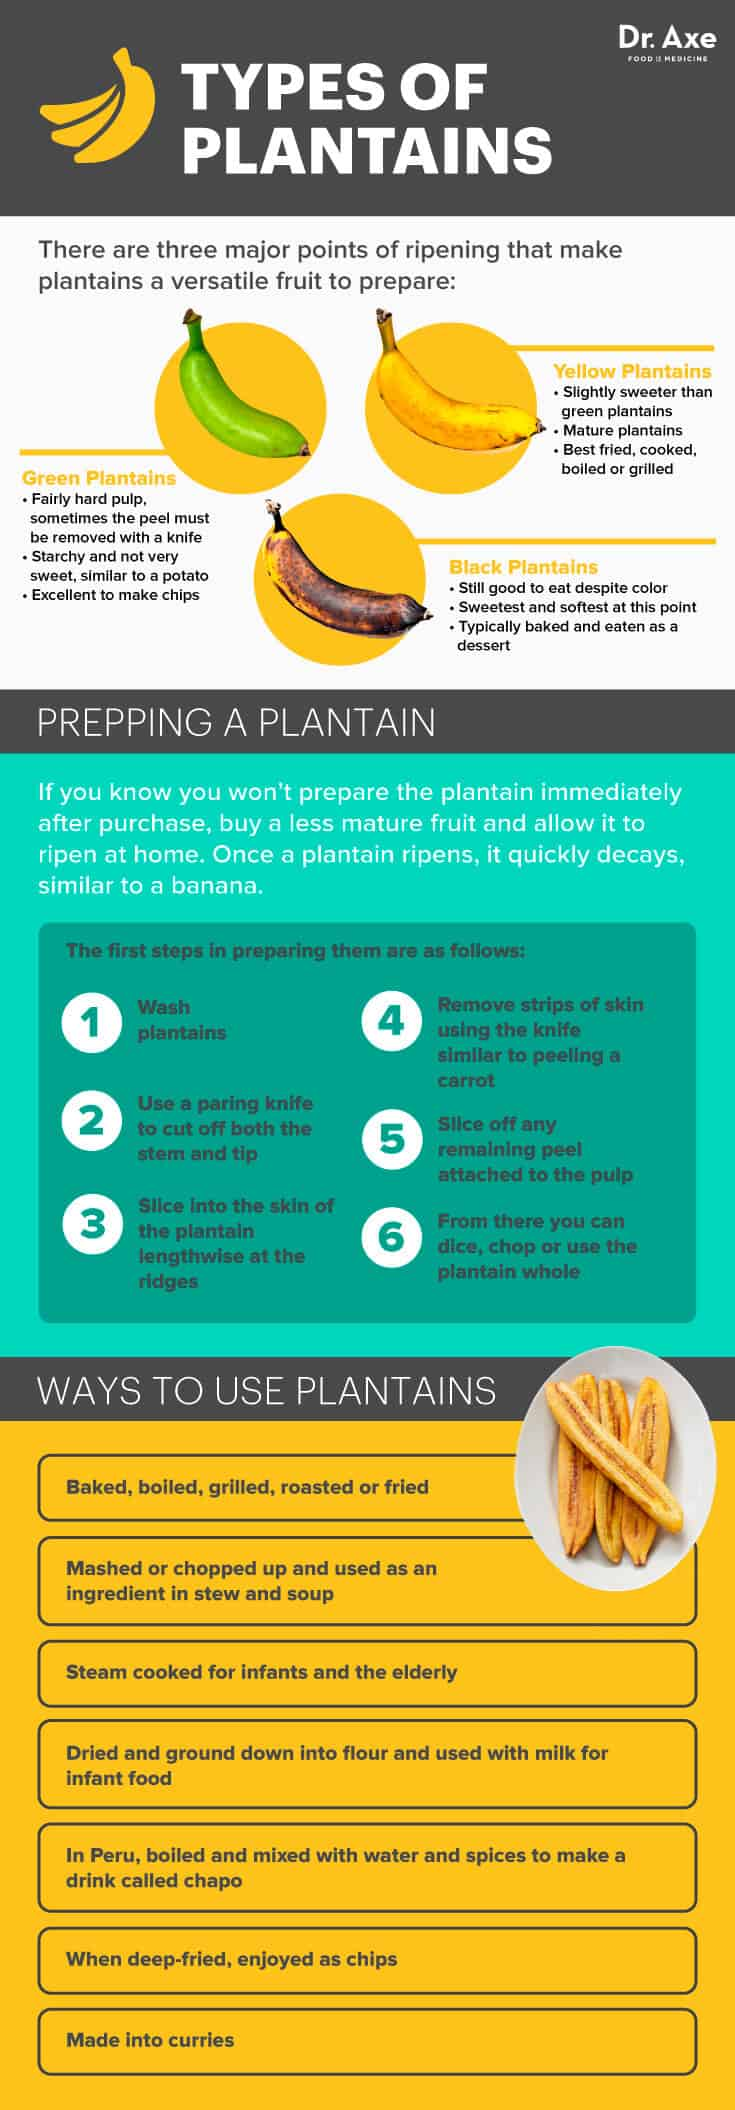 Types of plantains - Dr. Axe